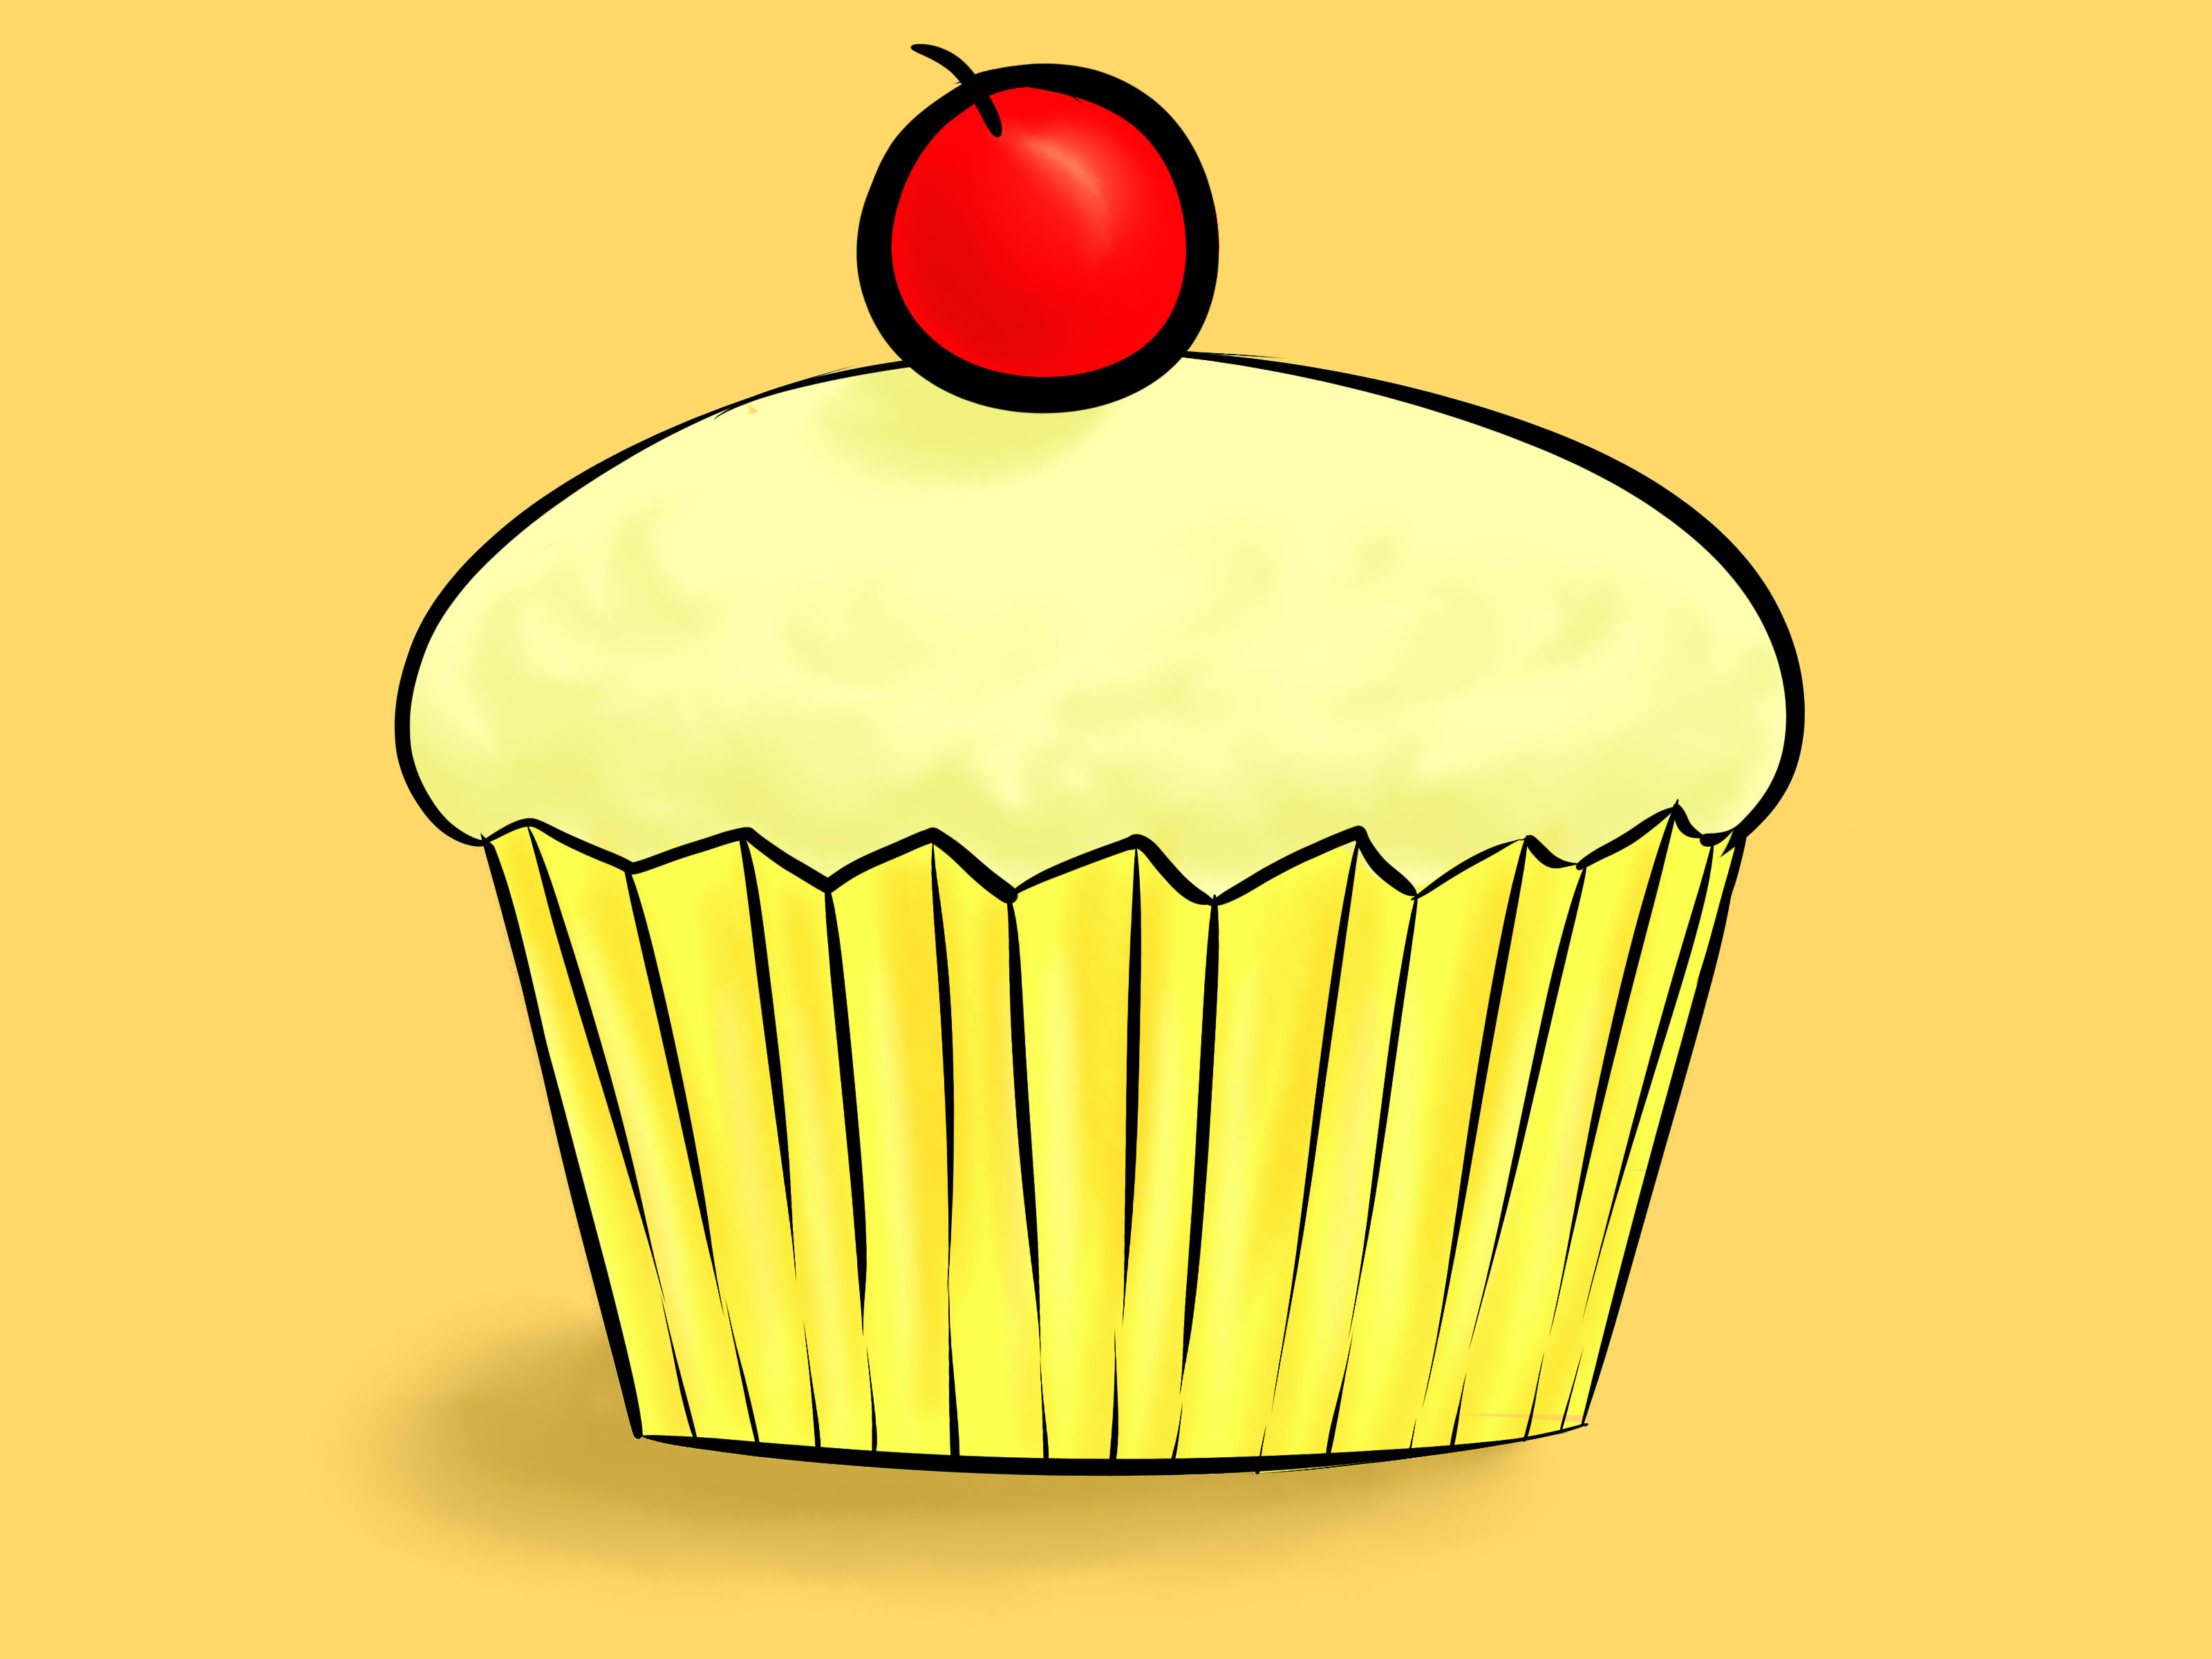 3200x2400 Draw A Cupcake Cake Illustration, Tutorials And Outlines